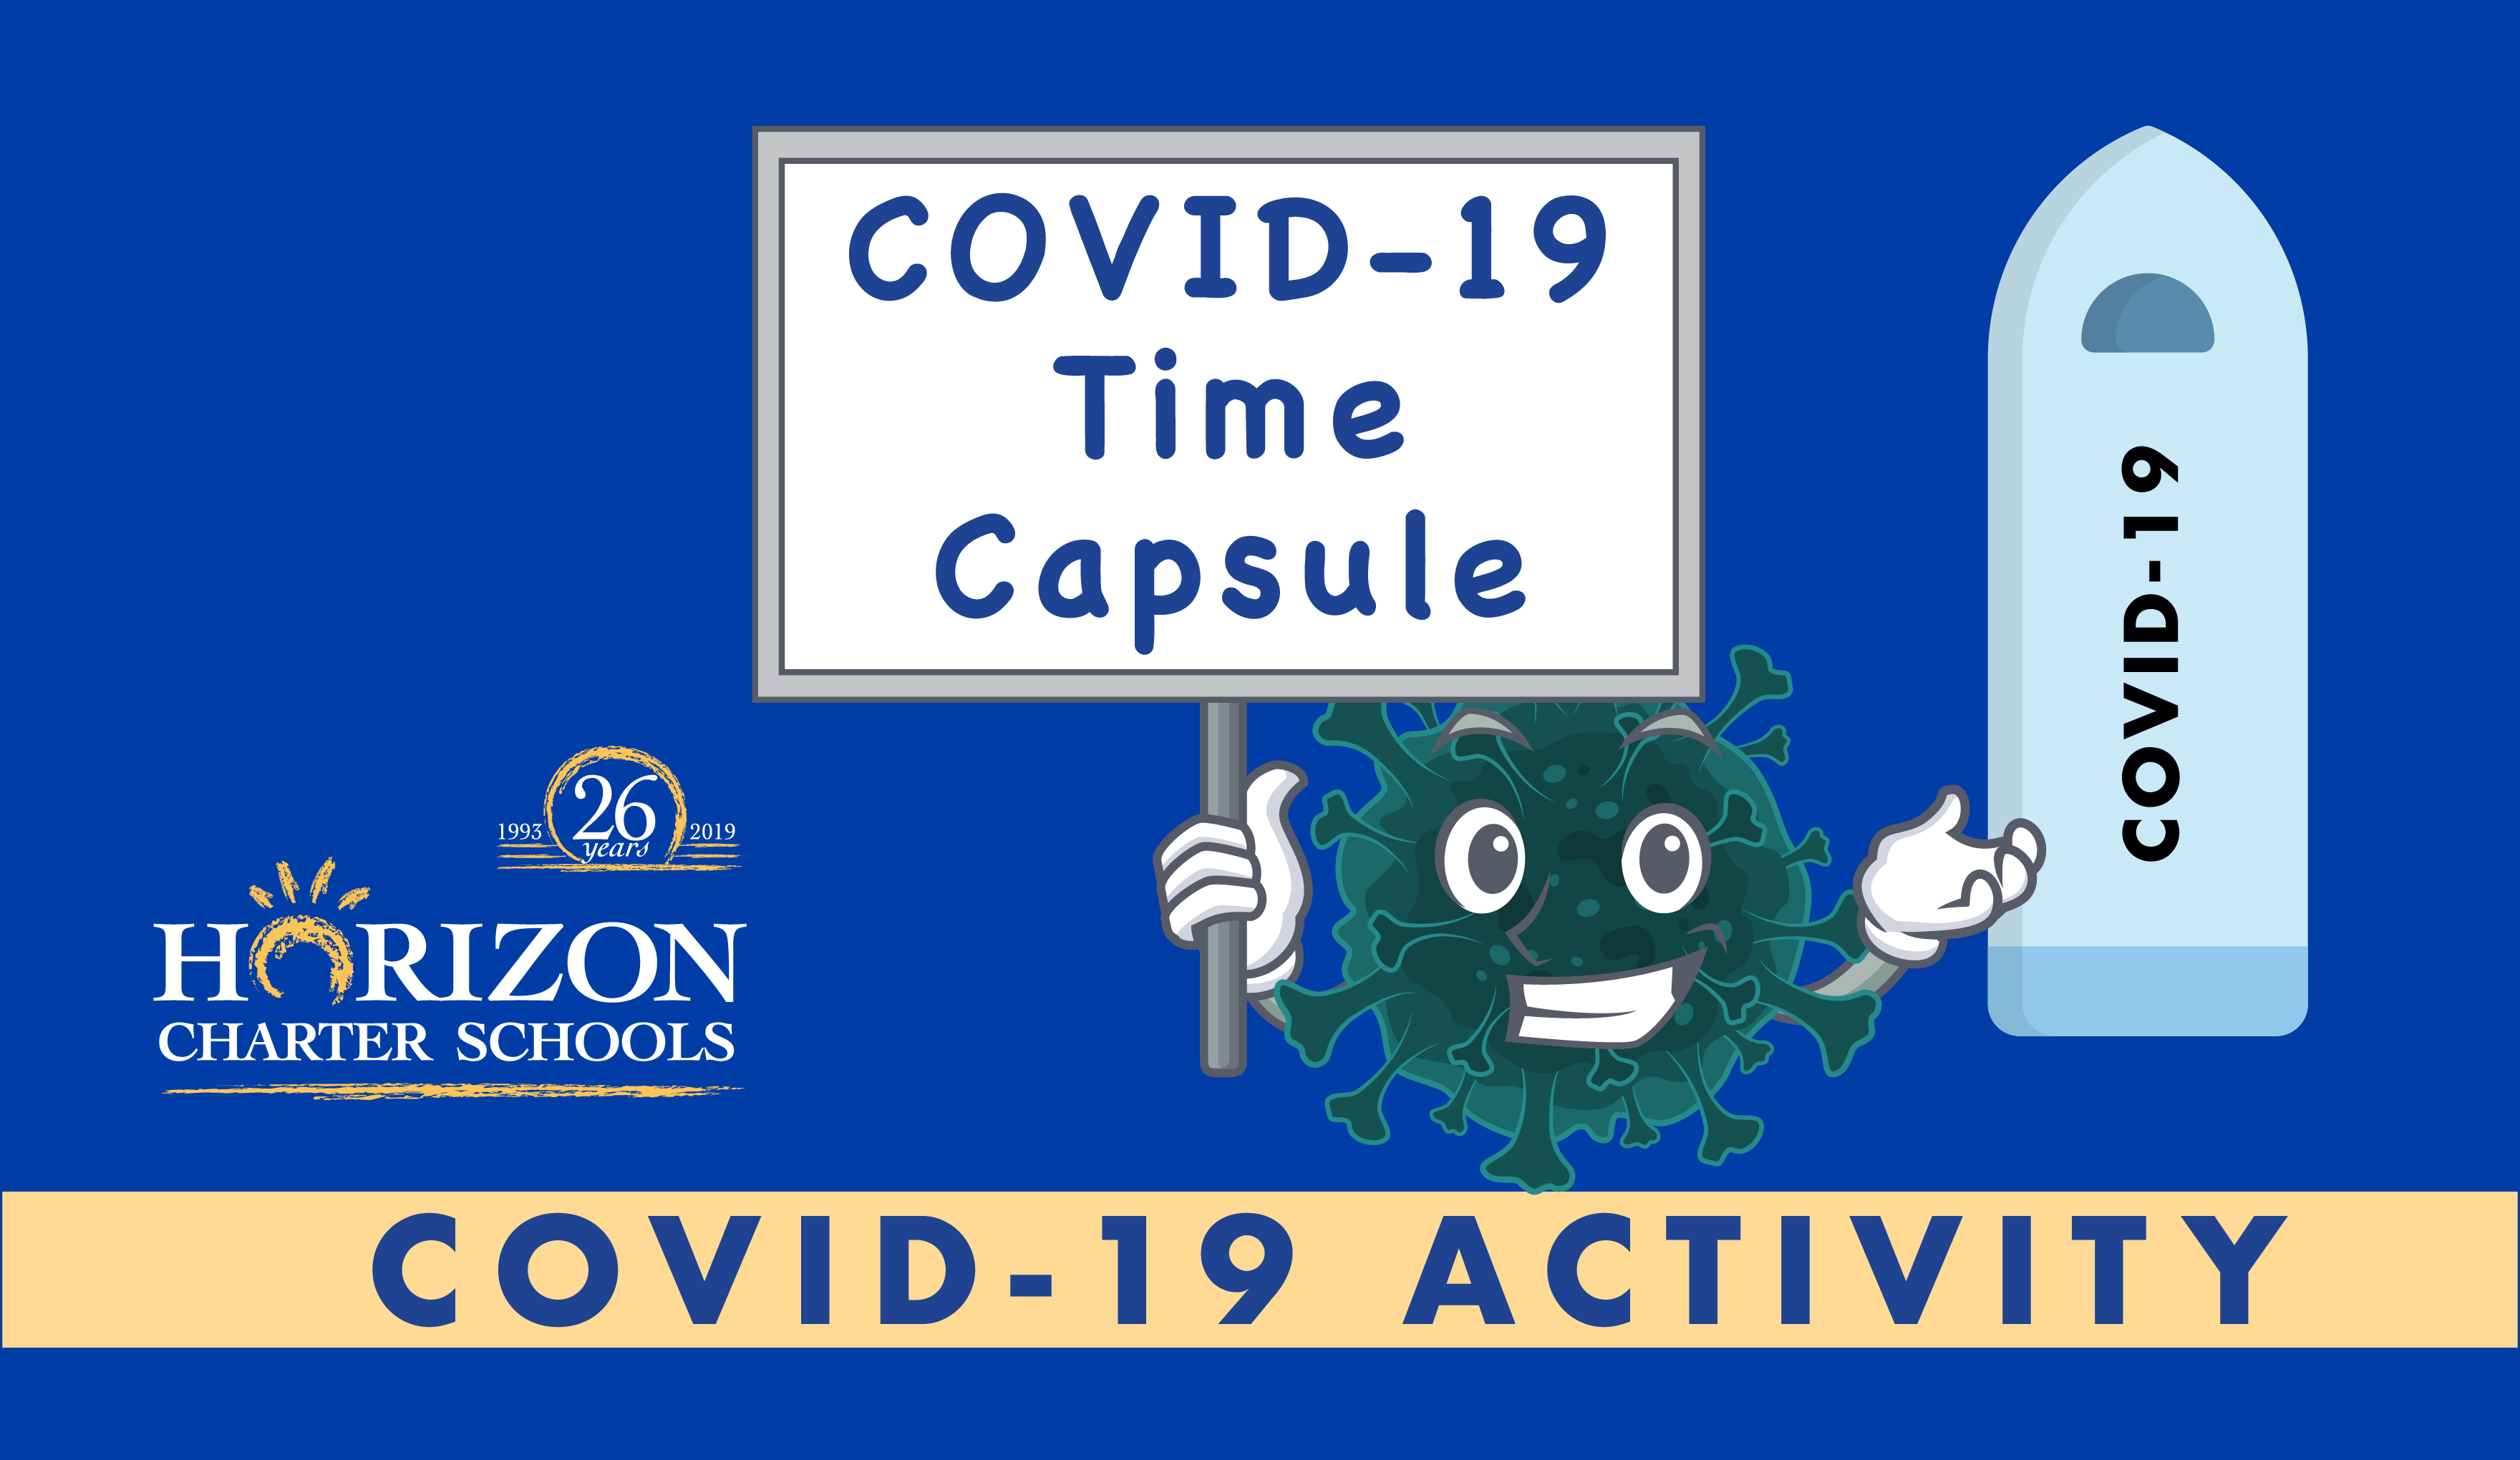 Covid 19 Time Capsule Activity For Home School Students Of